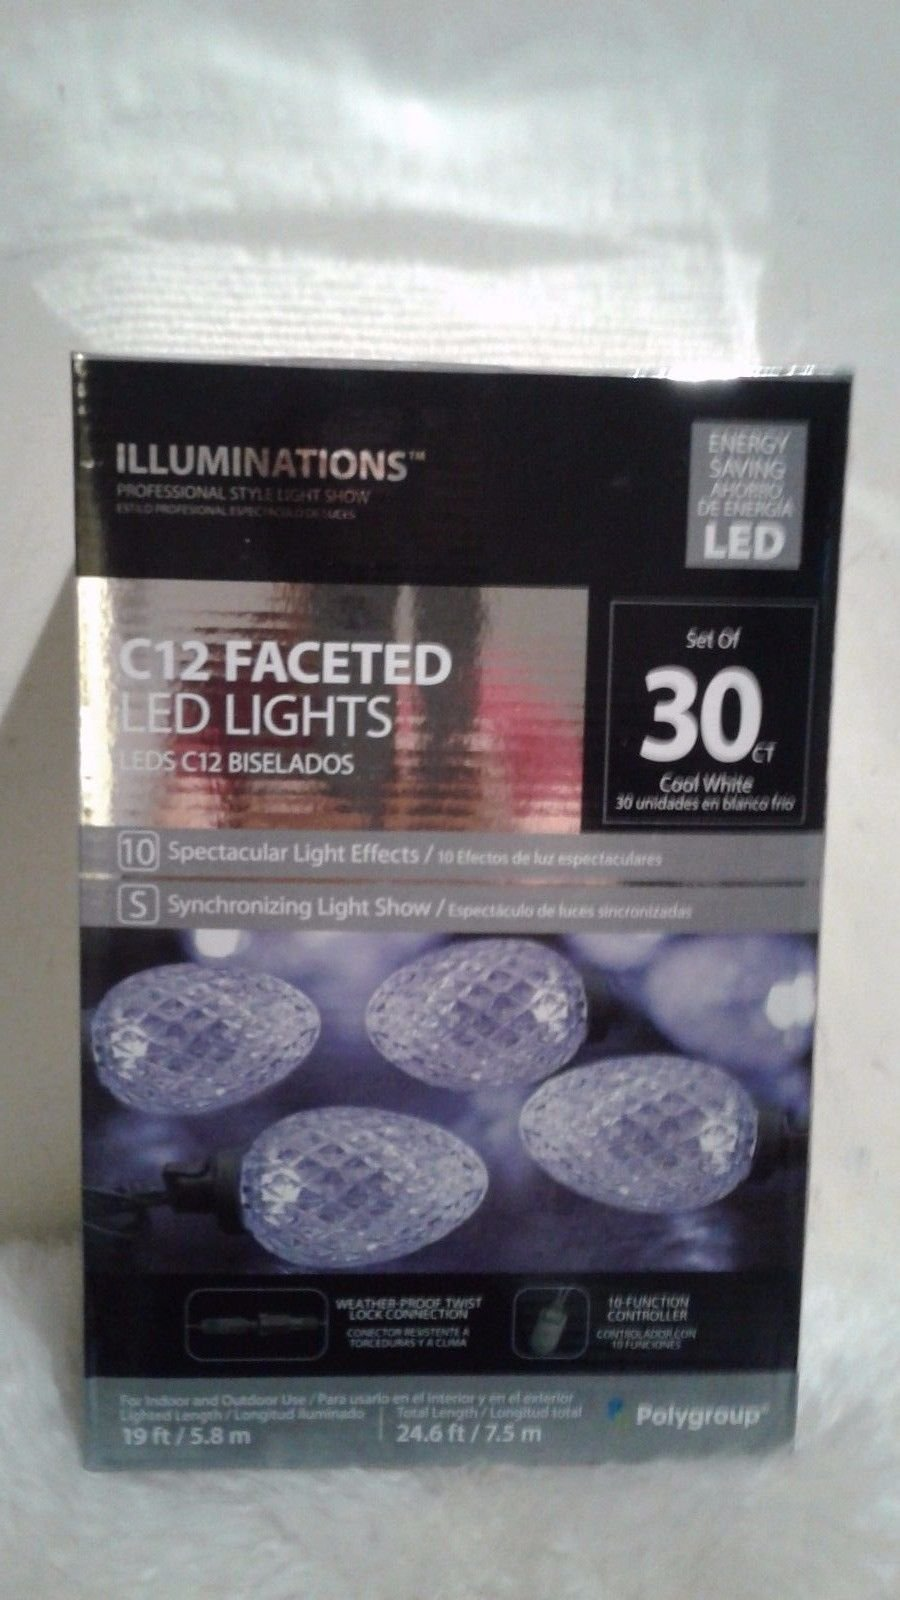 Illuminations 30-Count 19 ft Multi-Function Cool White C12 LED Light Show Indoor/Outdoor Christmas String Lights